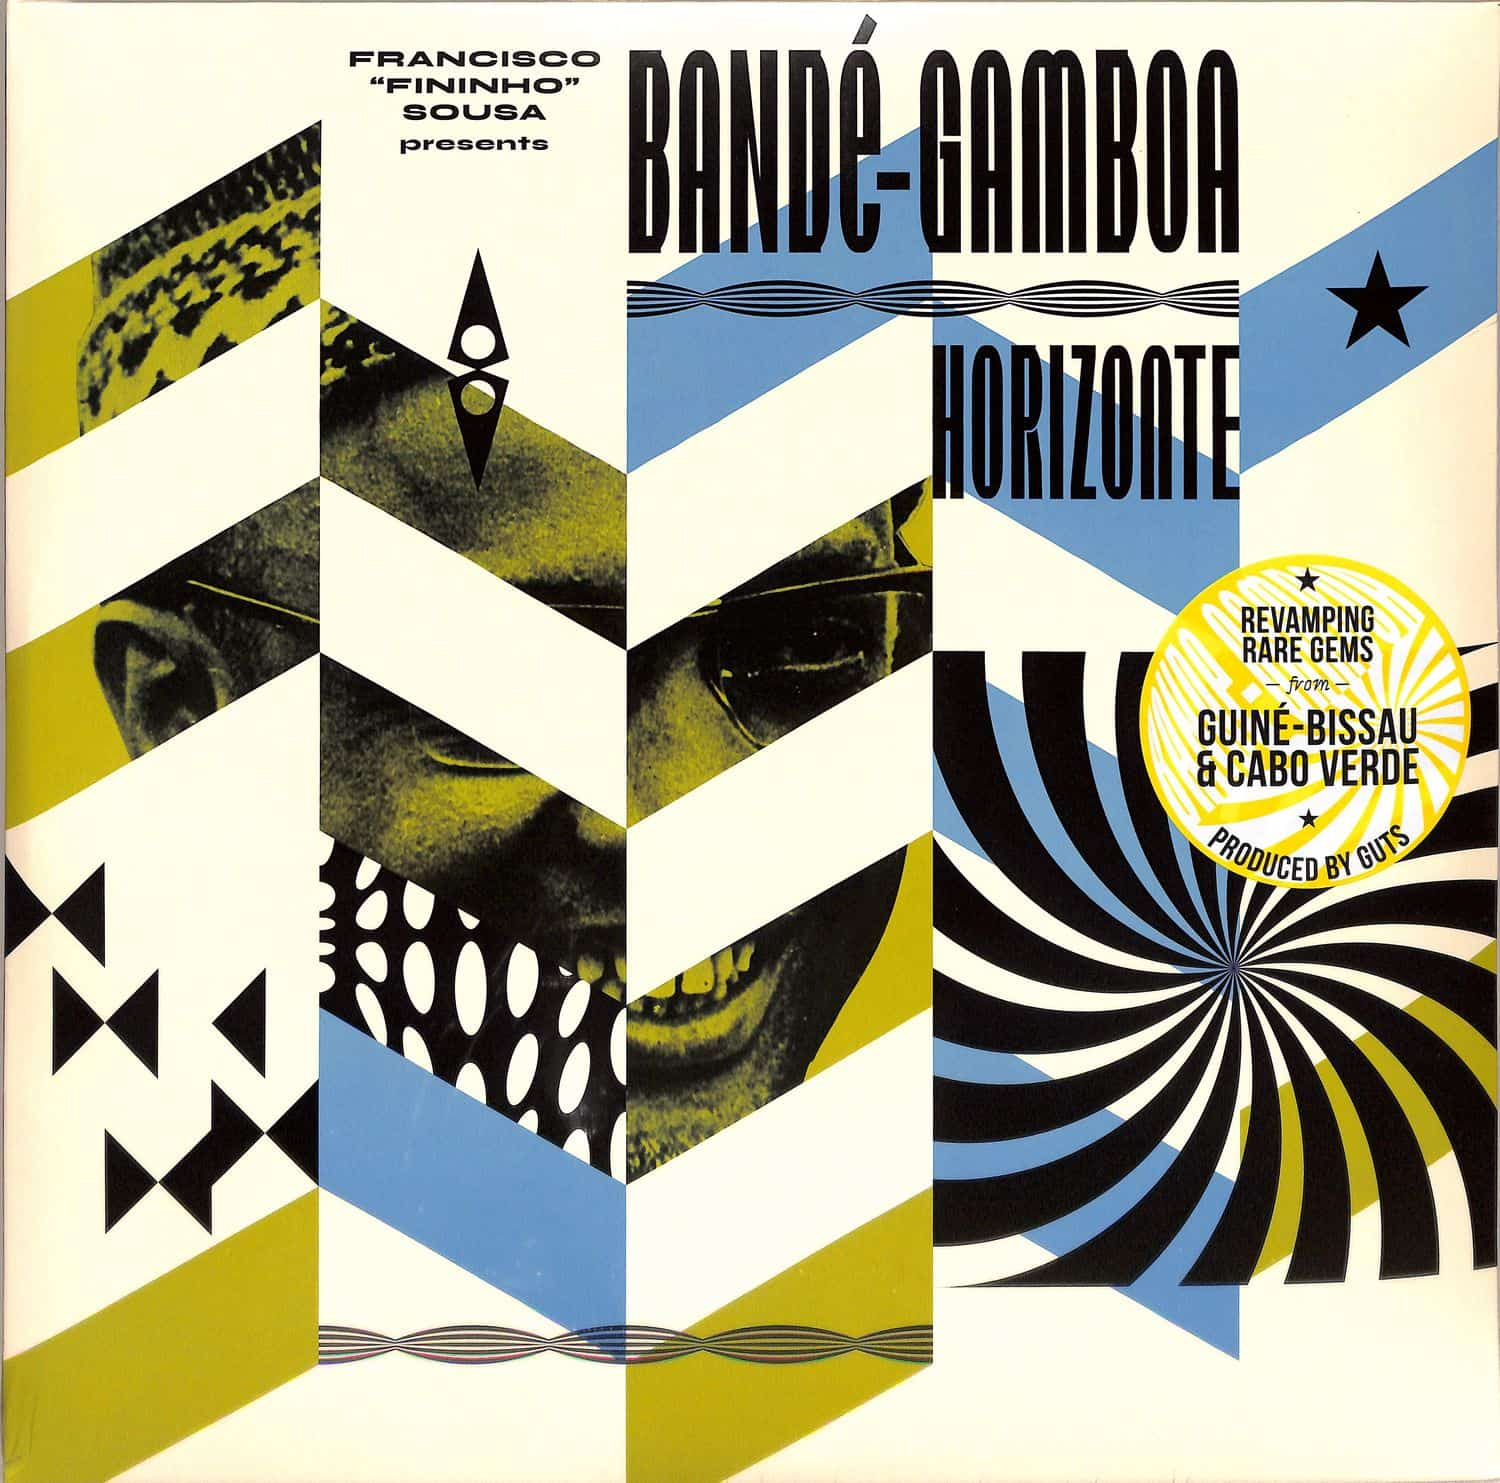 Bande Gamboa - REVAMPING RARE GEMS FROM CABO VERDE AND GUINE-BISSAU